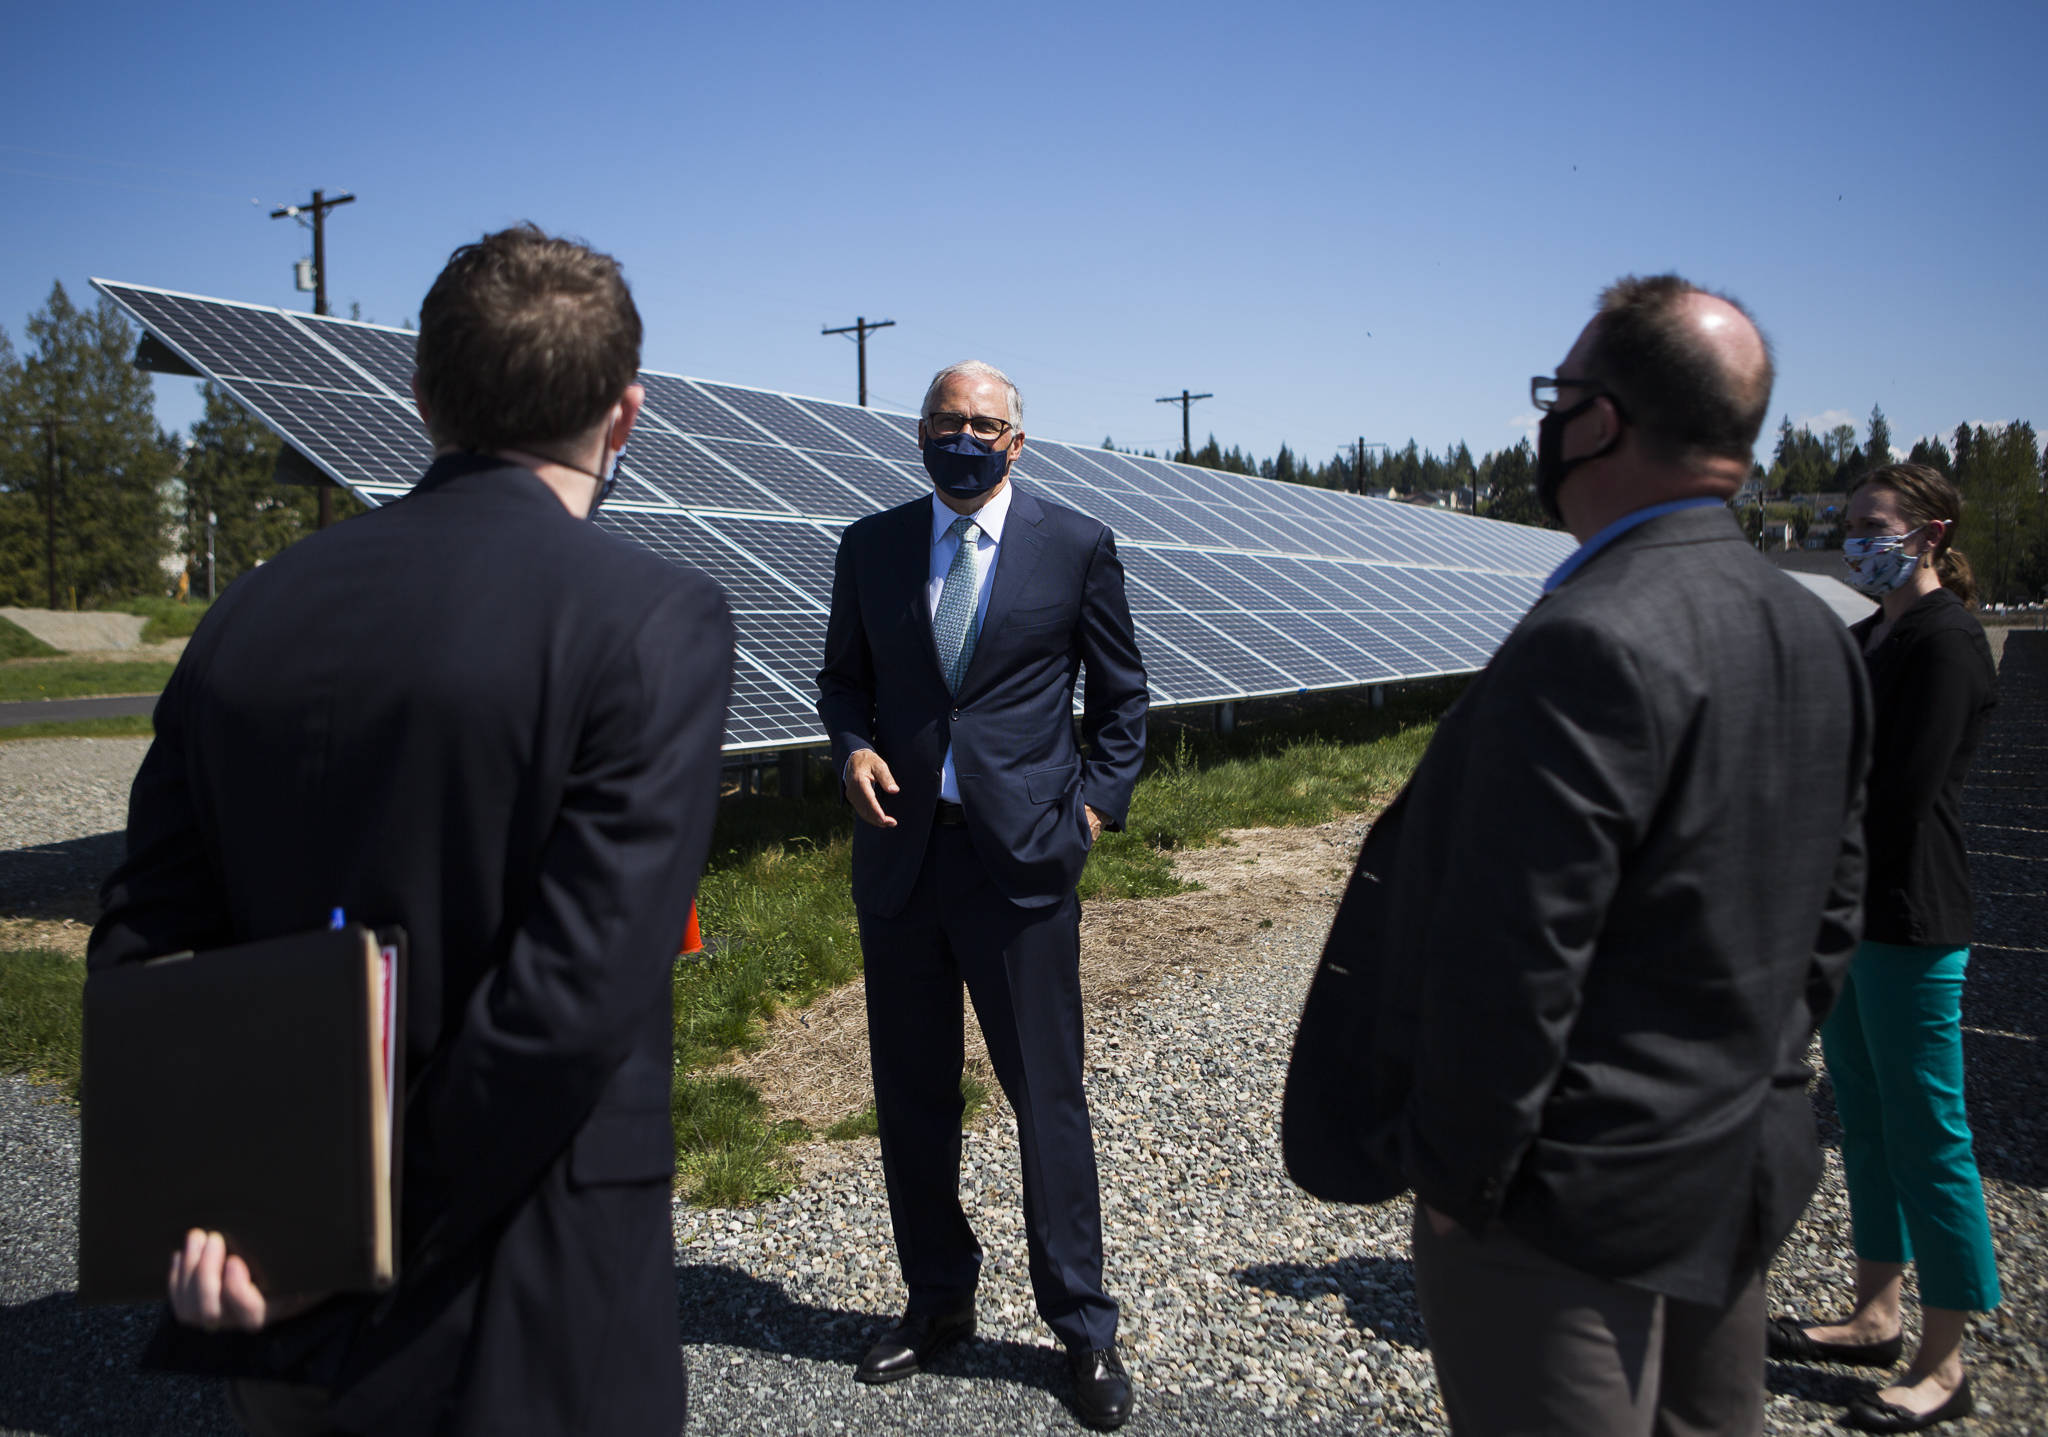 Gov. Jay Inslee stands in front of a line of solar panels that are a part of County PUD's microgrid. (Olivia Vanni / The Herald)